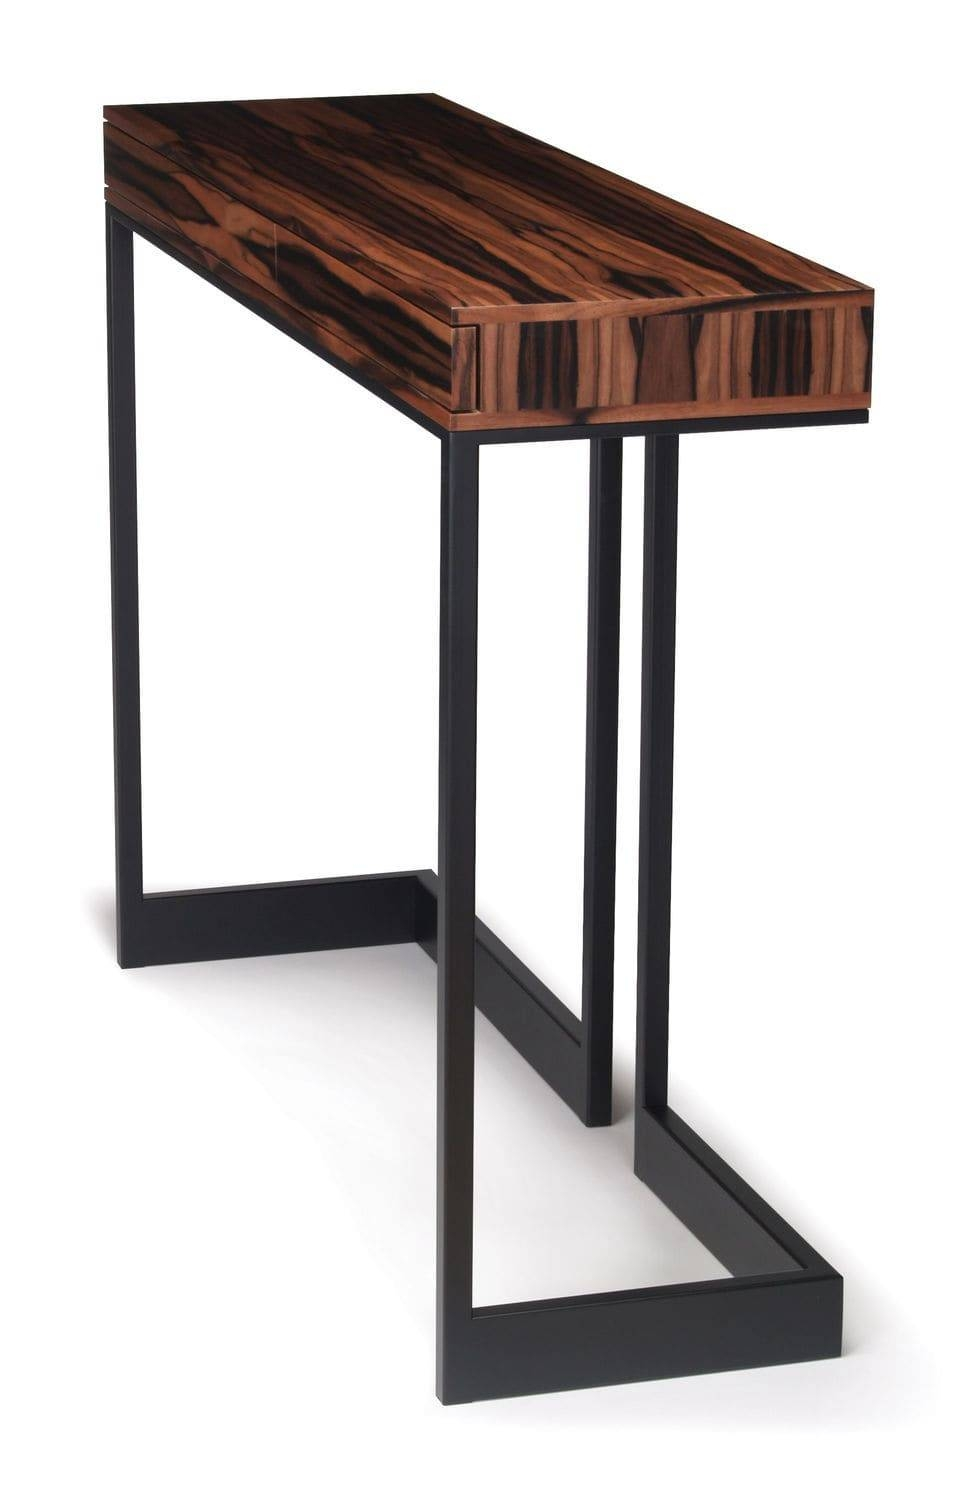 Contemporary Sideboard Table / Walnut / Beech / Ash - Wishbone intended for Metal Sideboard Furniture (Image 8 of 30)